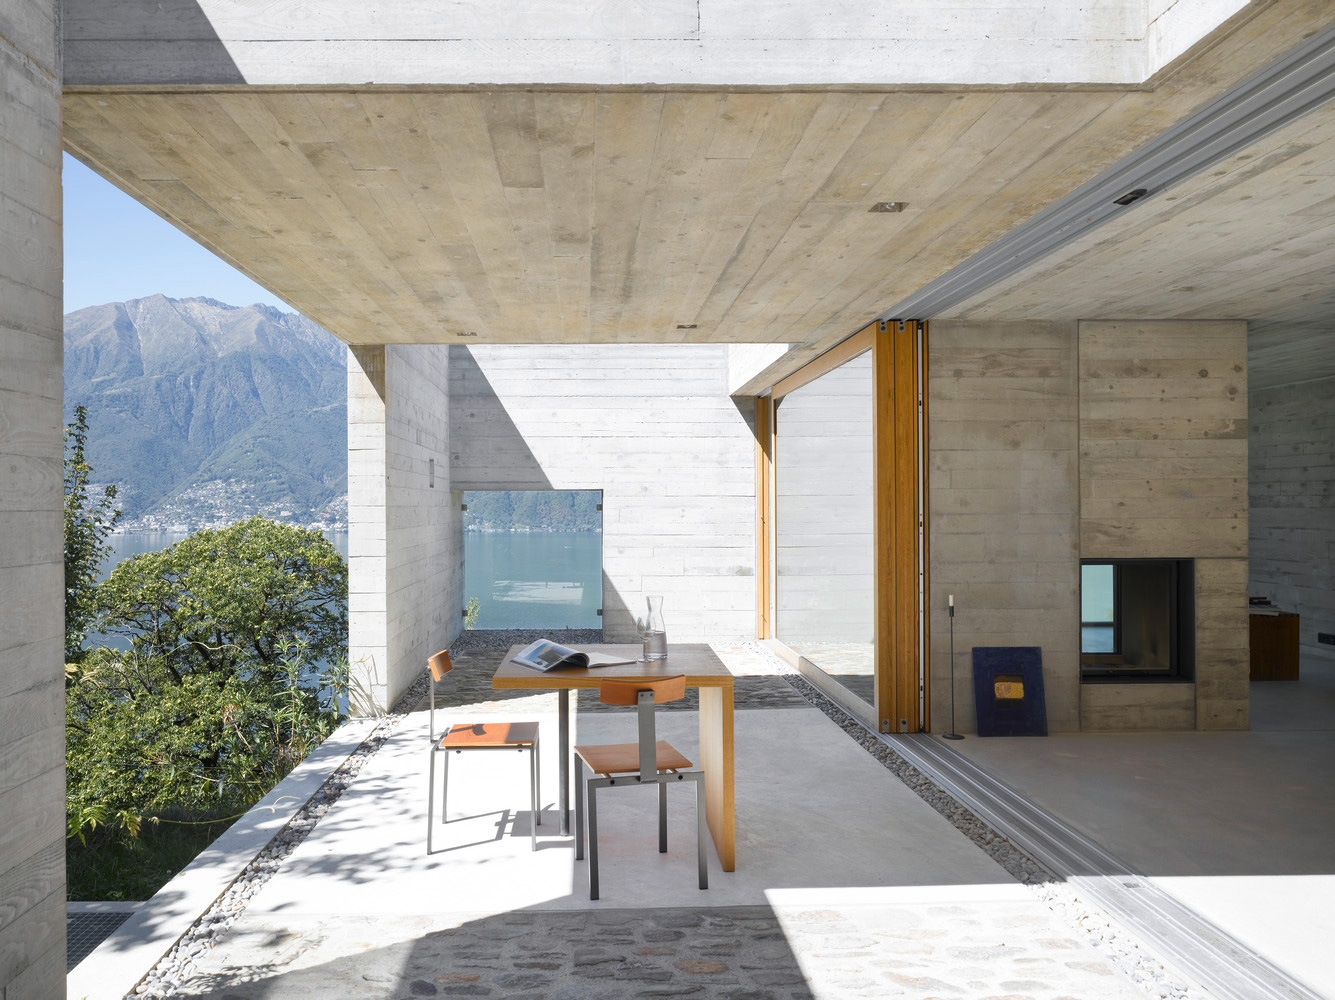 New Concrete House by Wespi de Meuron | Yellowtrace